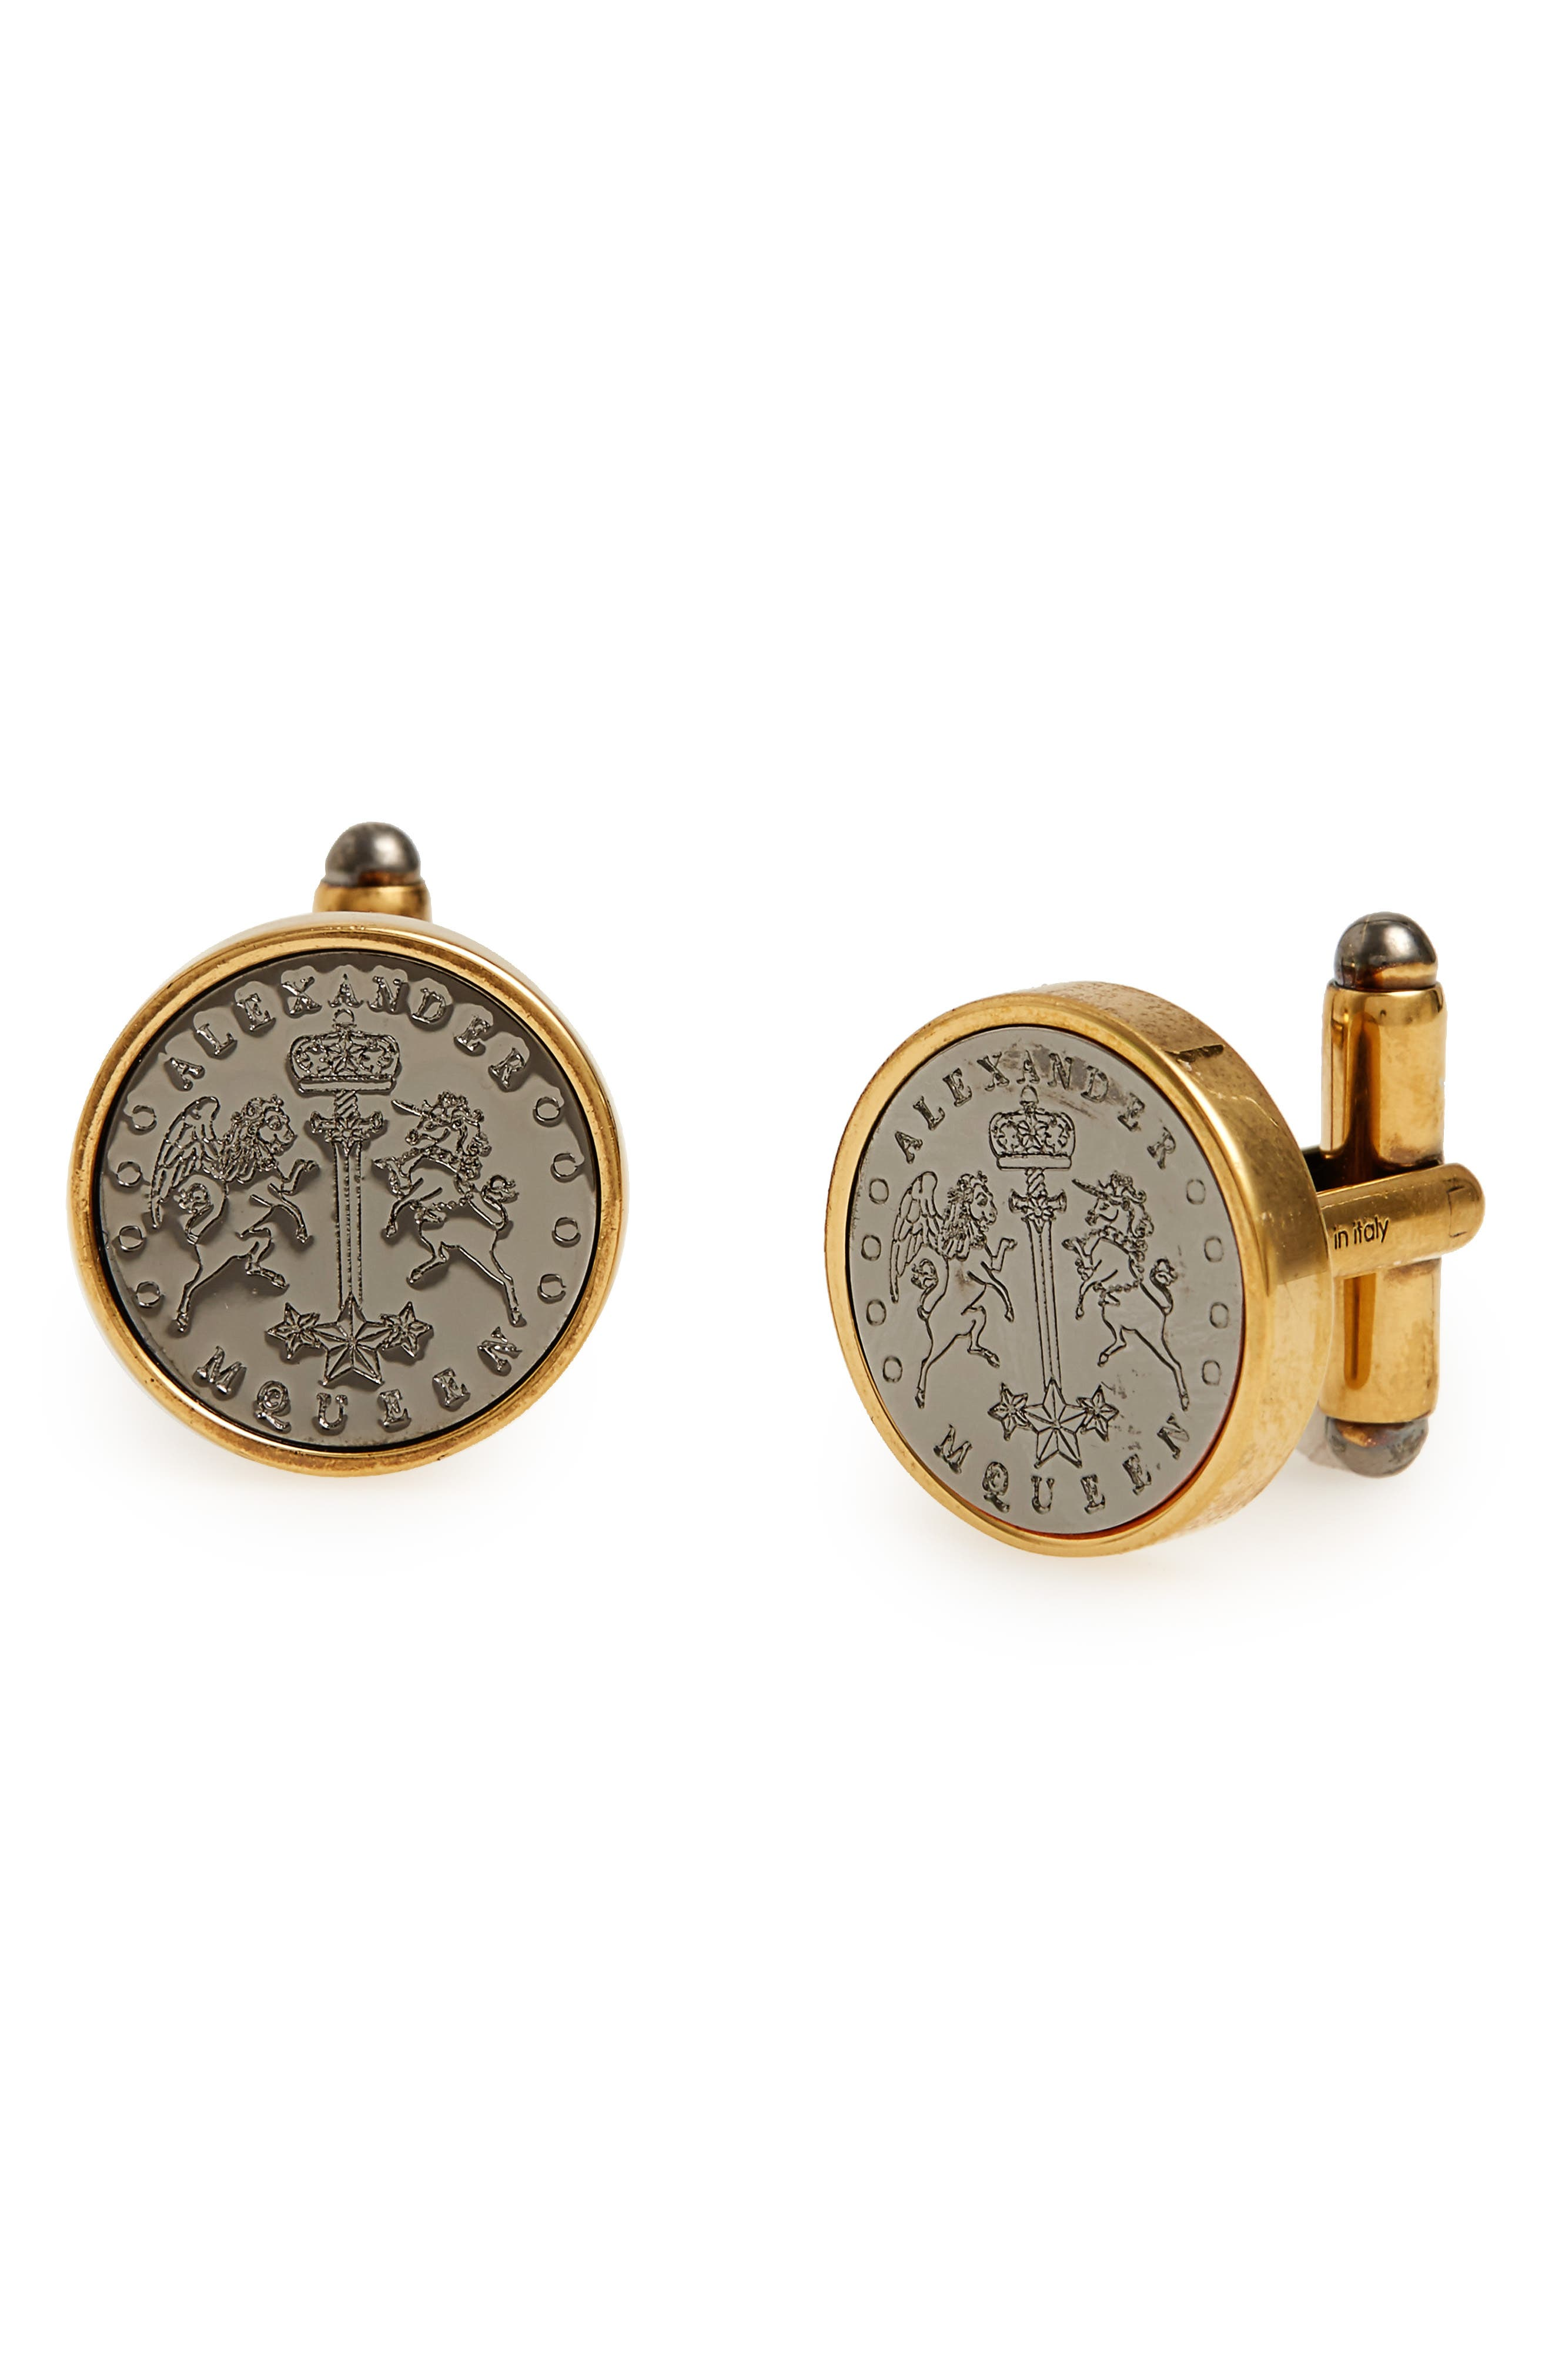 Signet Cuff Links,                             Main thumbnail 1, color,                             GOLD/ SILVER